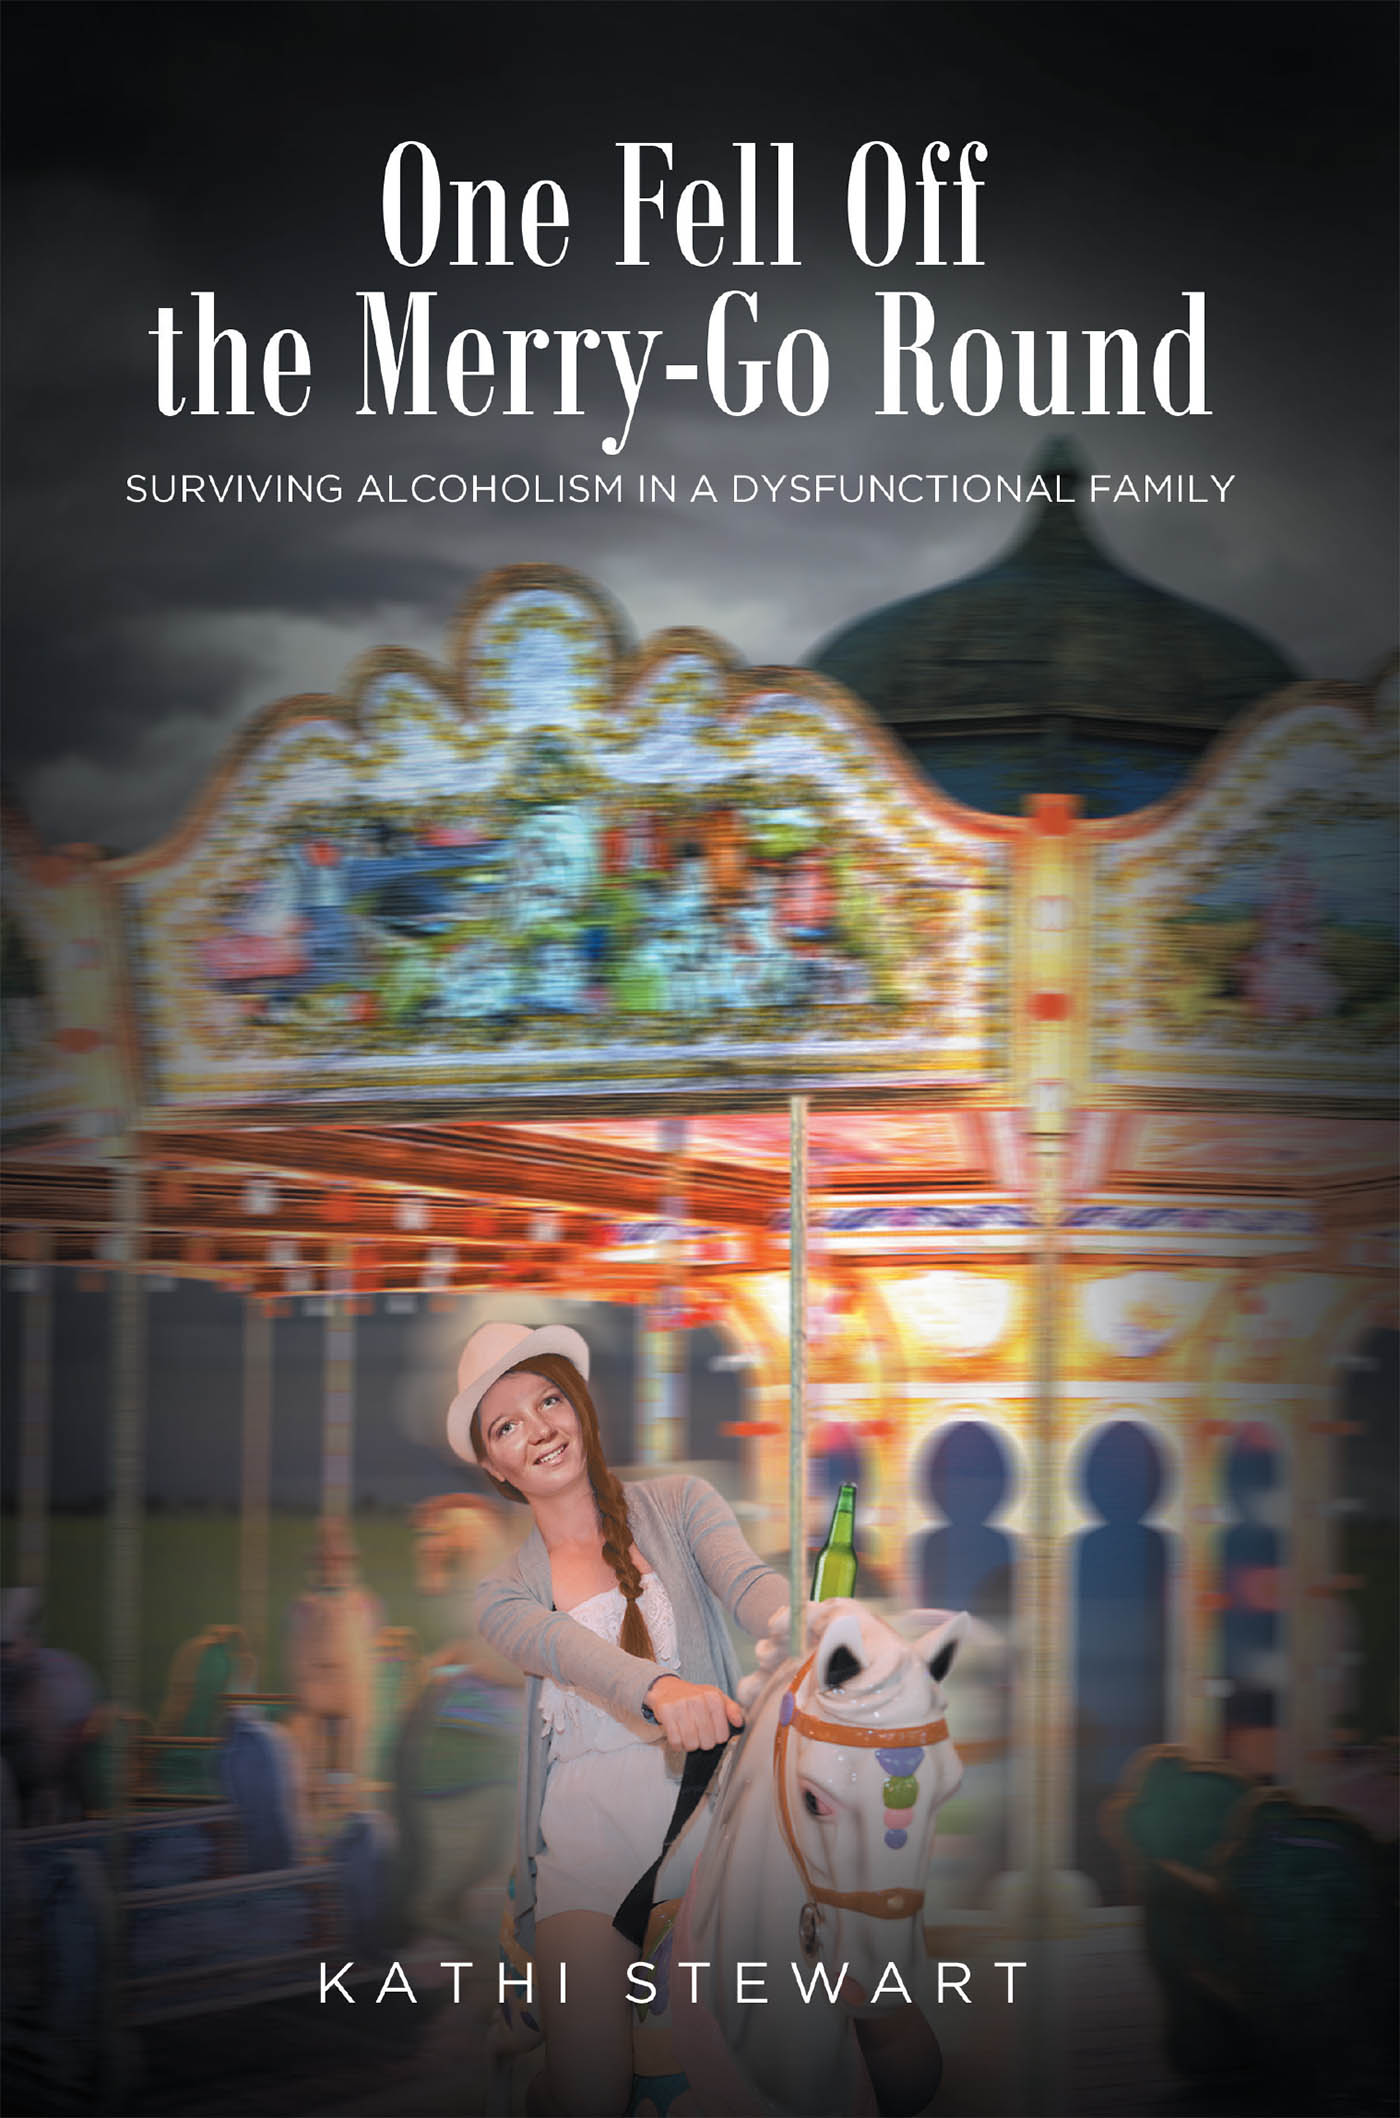 Kathi Stewart's New Book 'One Fell Off the Merry-Go-Round' Chronicles An Amazing Triumph Over Addiction and Abuse With The Great Strength of Faith